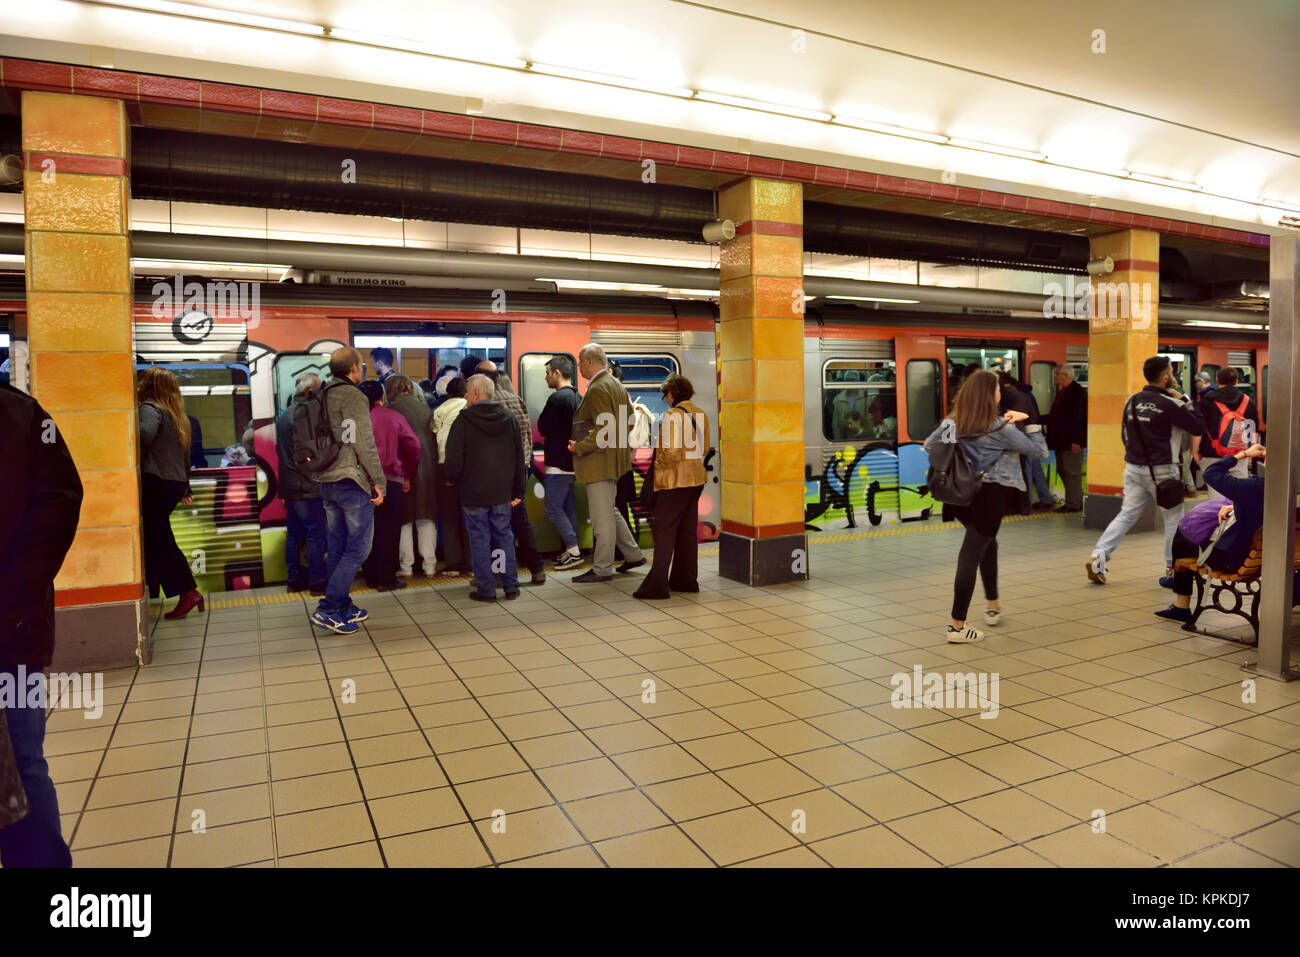 Passengers on platform waiting for and boarding train at Omonia metro station, Athens, Greece - Stock Image